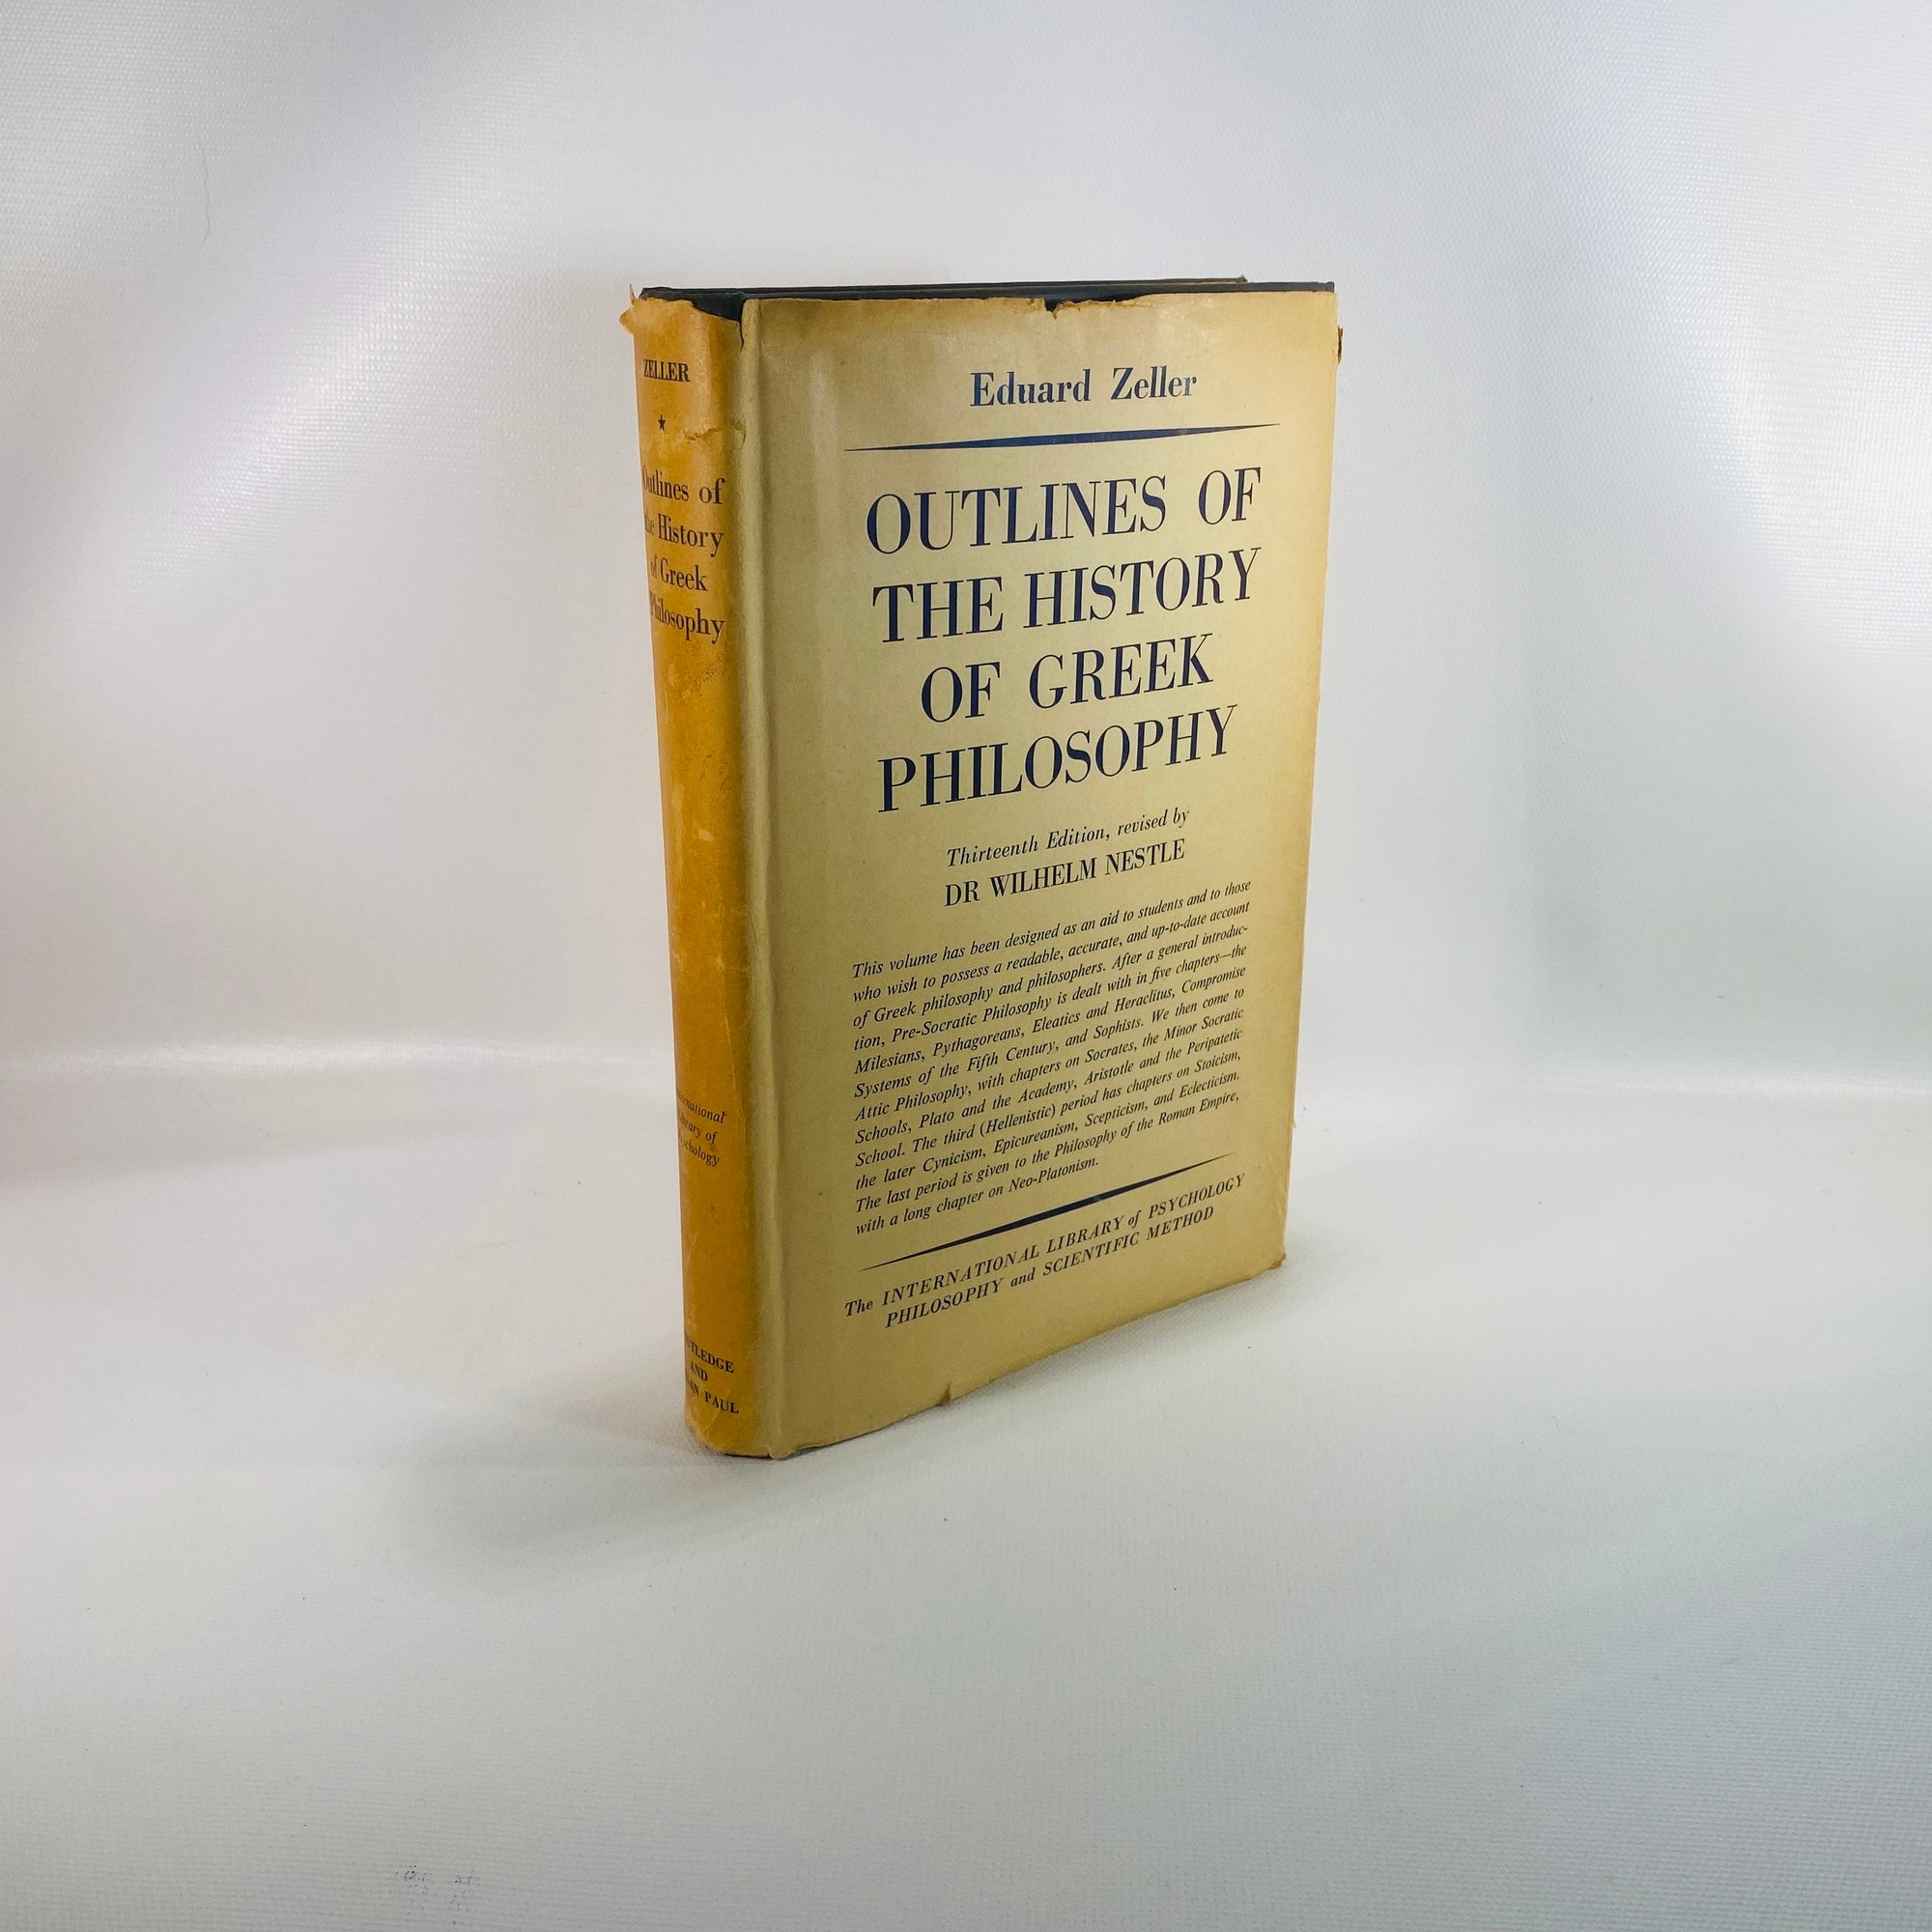 Outlines of The History of Greek Philosophy by Eduard Zeller 1963